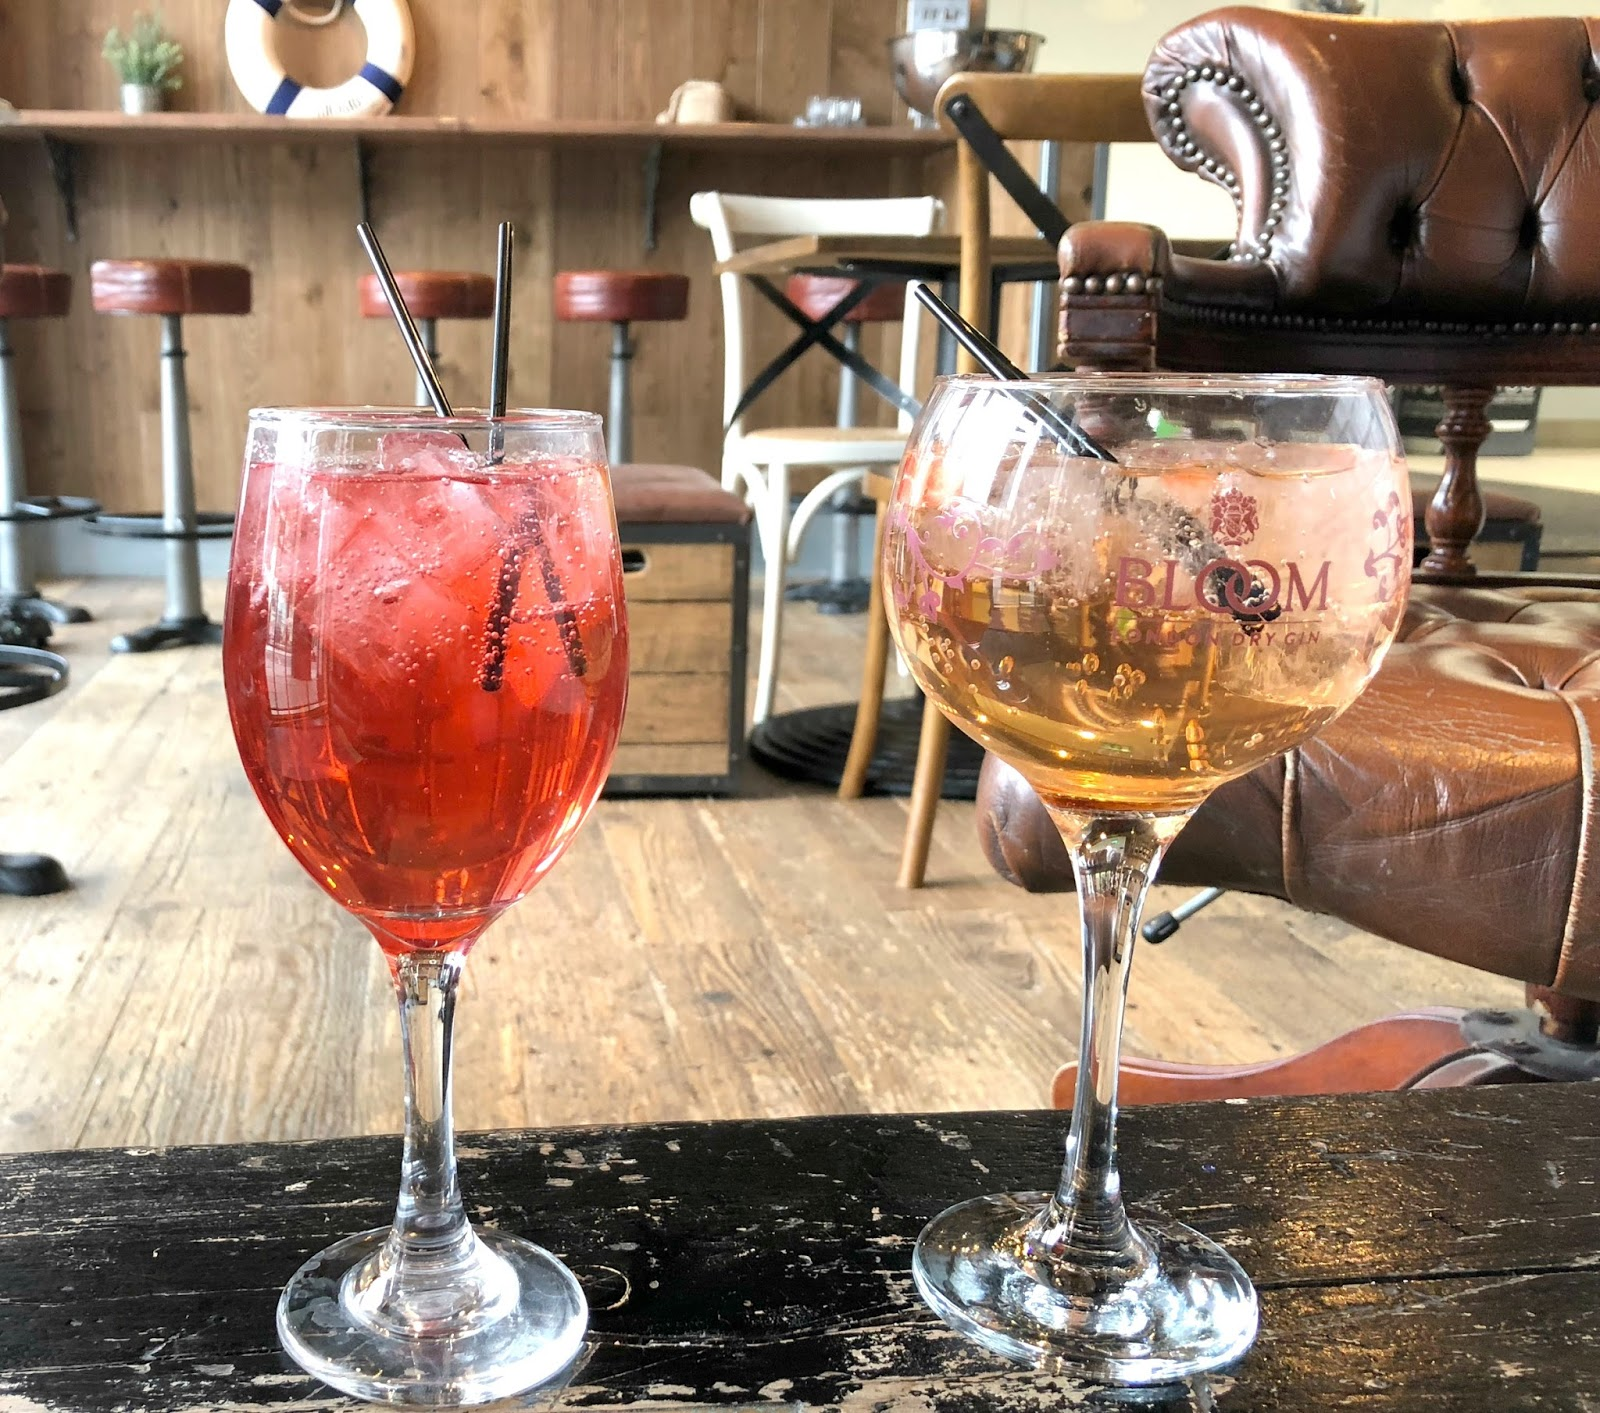 The Best Gin Bars in Newcastle - Georges Great British Kitchen